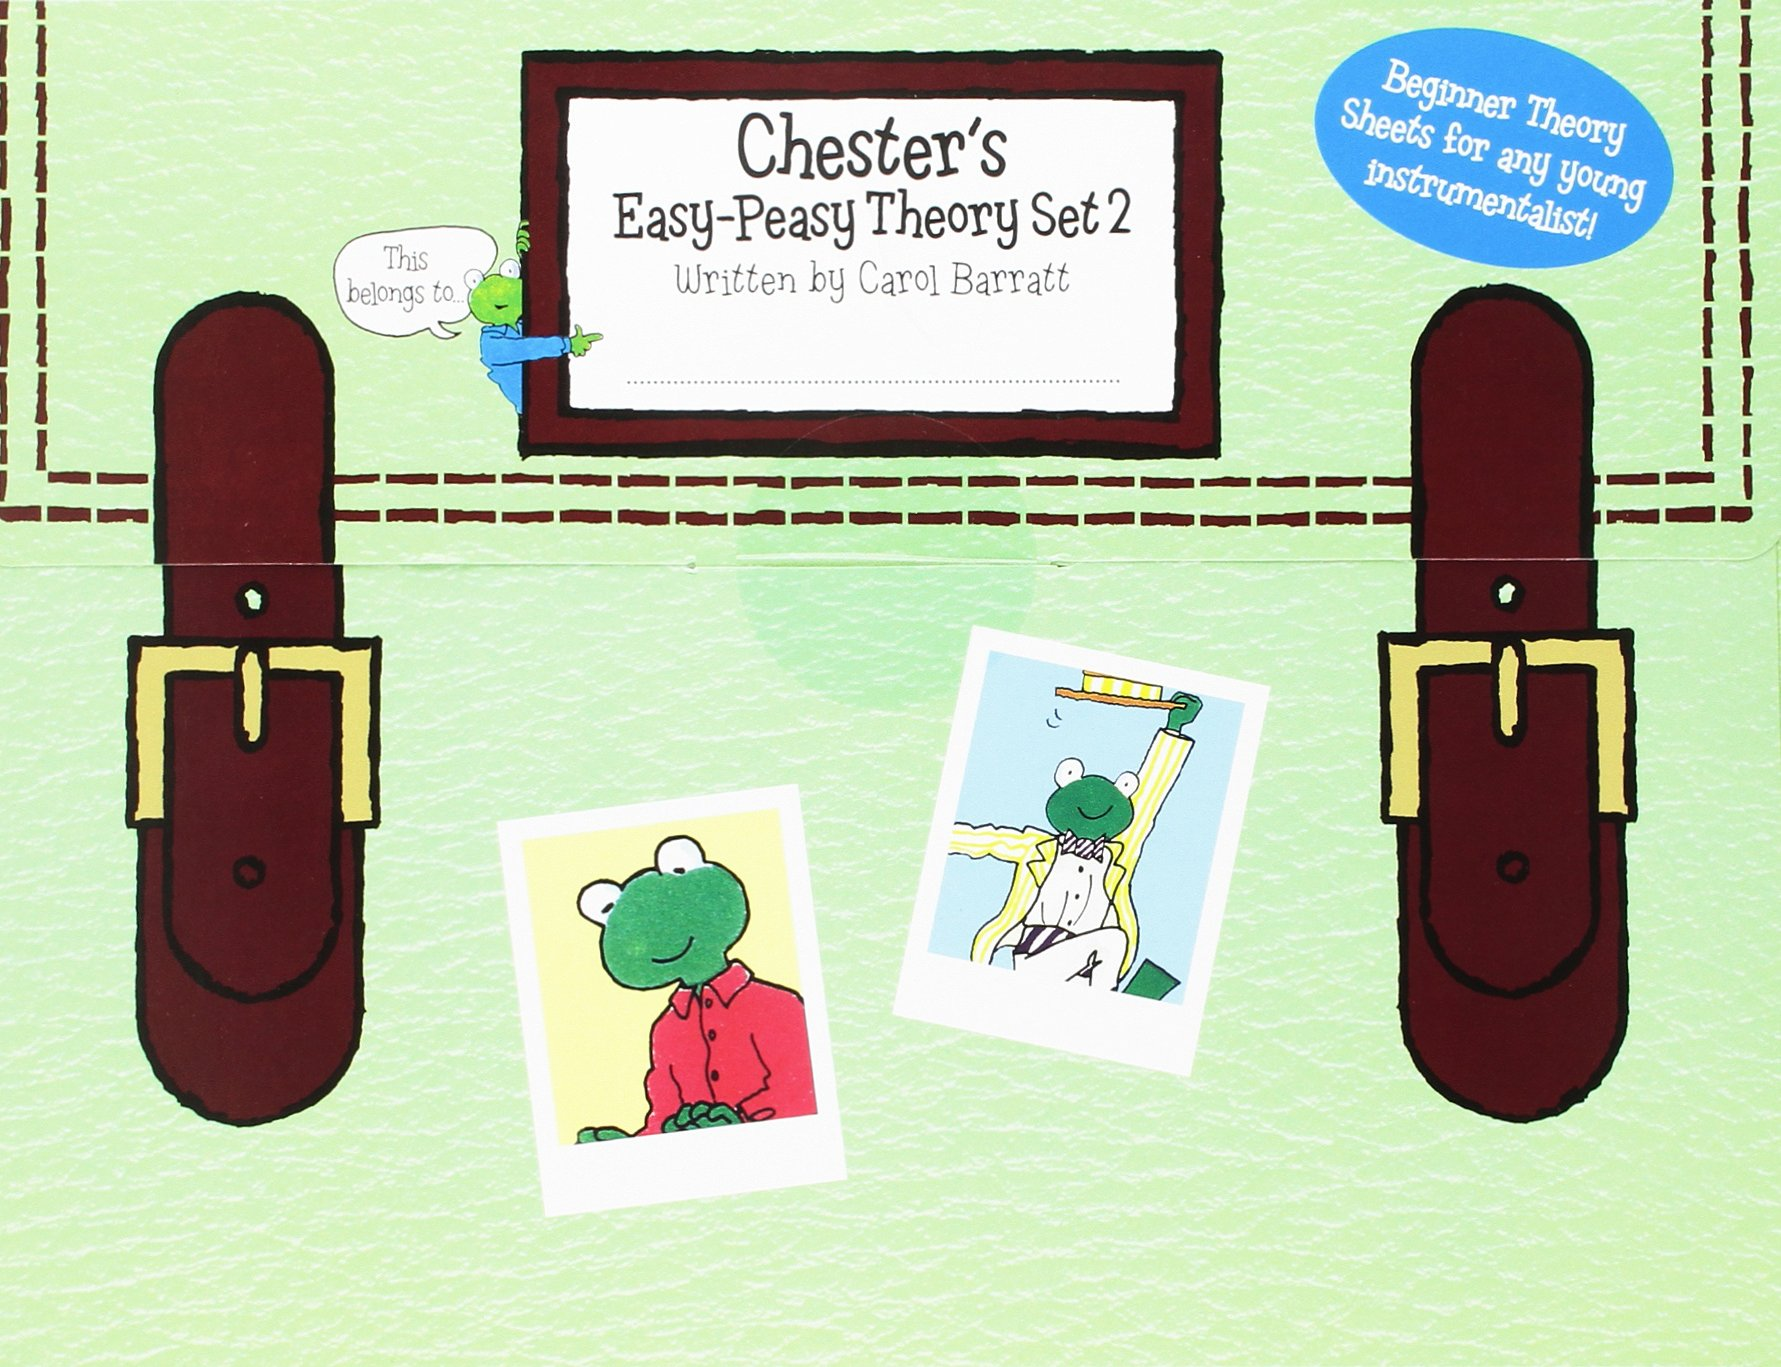 Chester s Easy-Peasy Theory Set 2